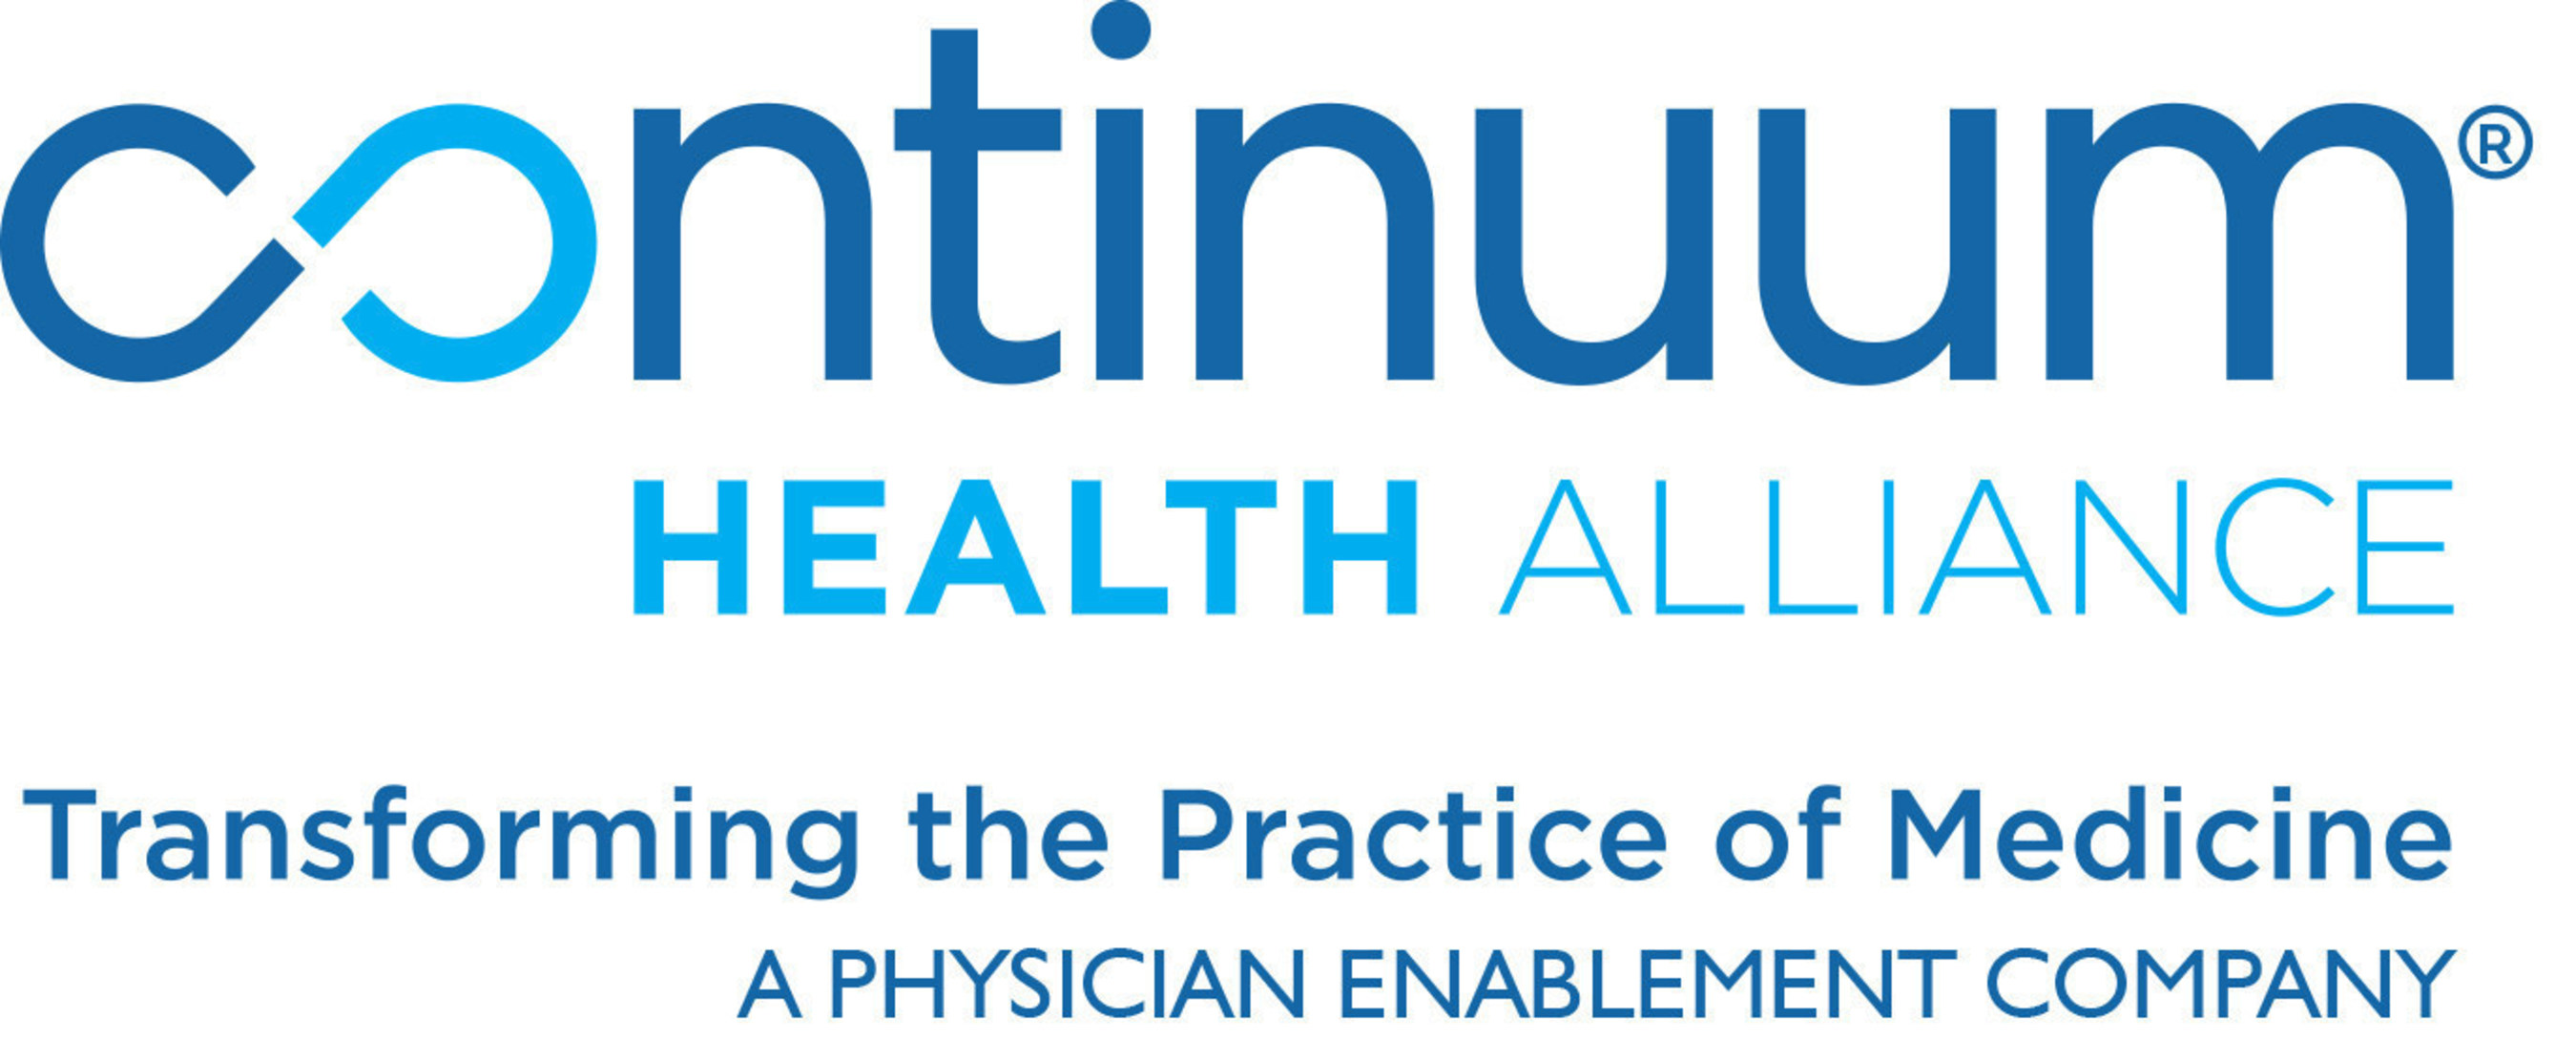 """Continuum Health Alliance, LLC (""""Continuum"""") is a physician enablement company that optimizes value-based commerce through population health, practice management and network development services. The company offers proven, strategic business and clinical solutions empowering physician enterprises and other providers to enhance patient access and experience, improve health and lower overall costs. Continuum serves 1,200+ primary care physicians, specialists and nurse practitioners in nearly 400 medical offices and hospital locations. Learn more at www.challc.net."""